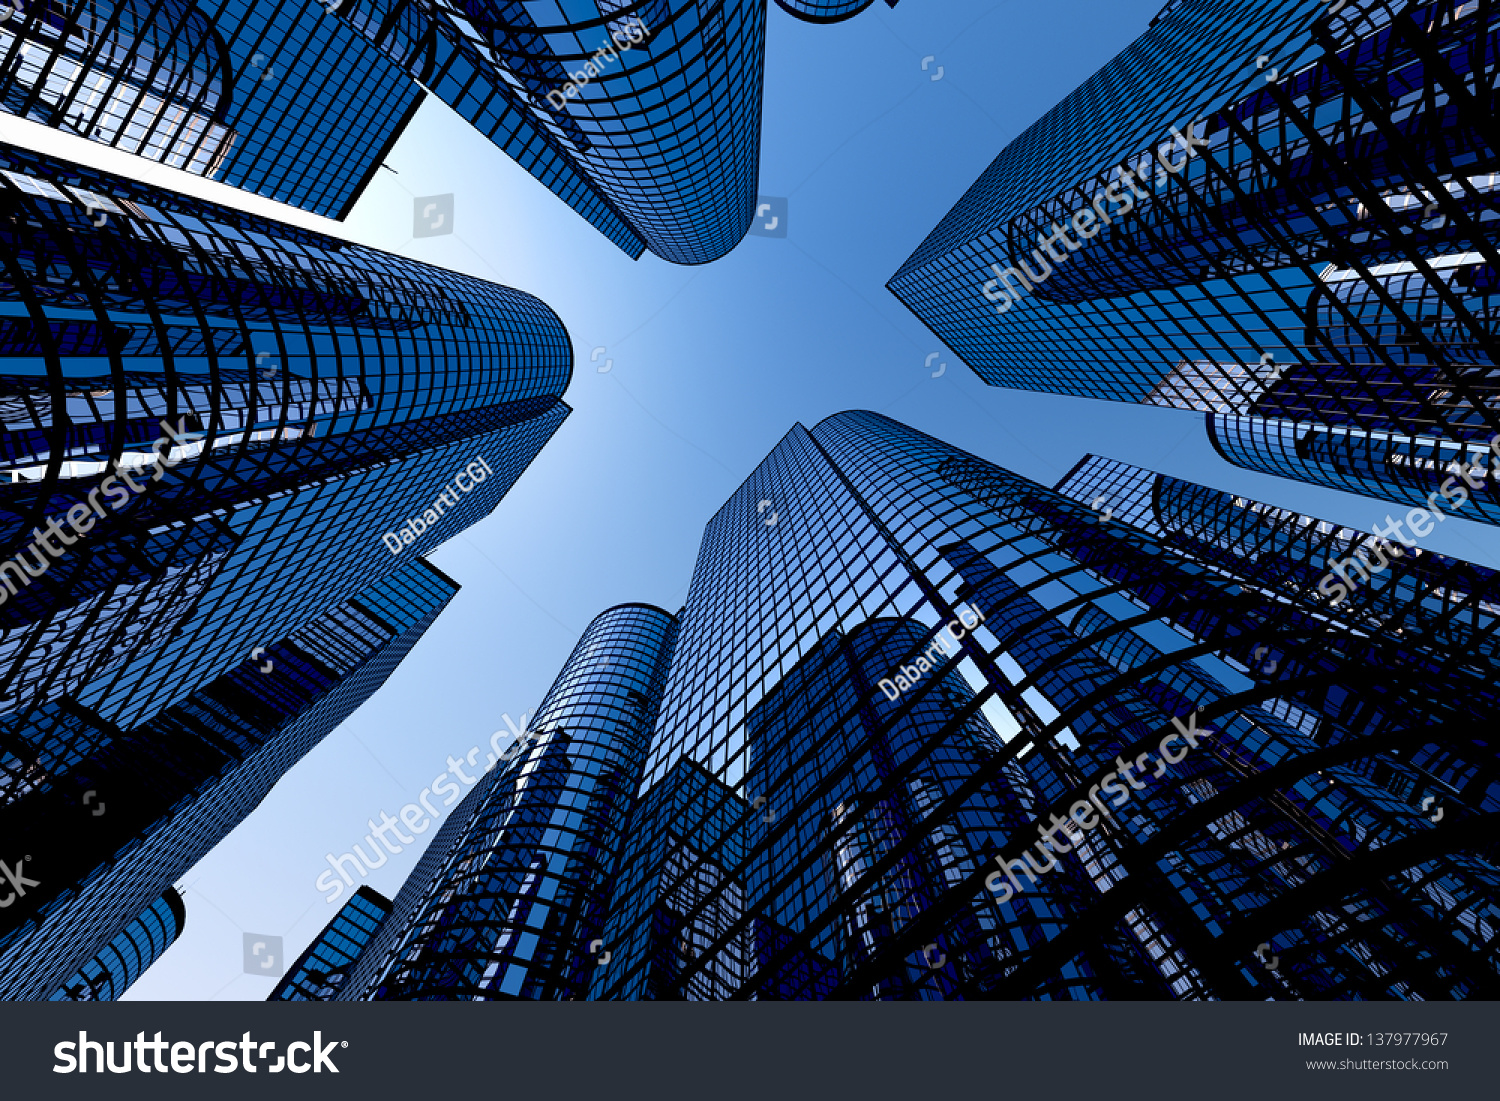 Low Angle View To Light Glass Buildings Of Business Center: Low Angle Shot Modern Glass City Stock Photo 137977967